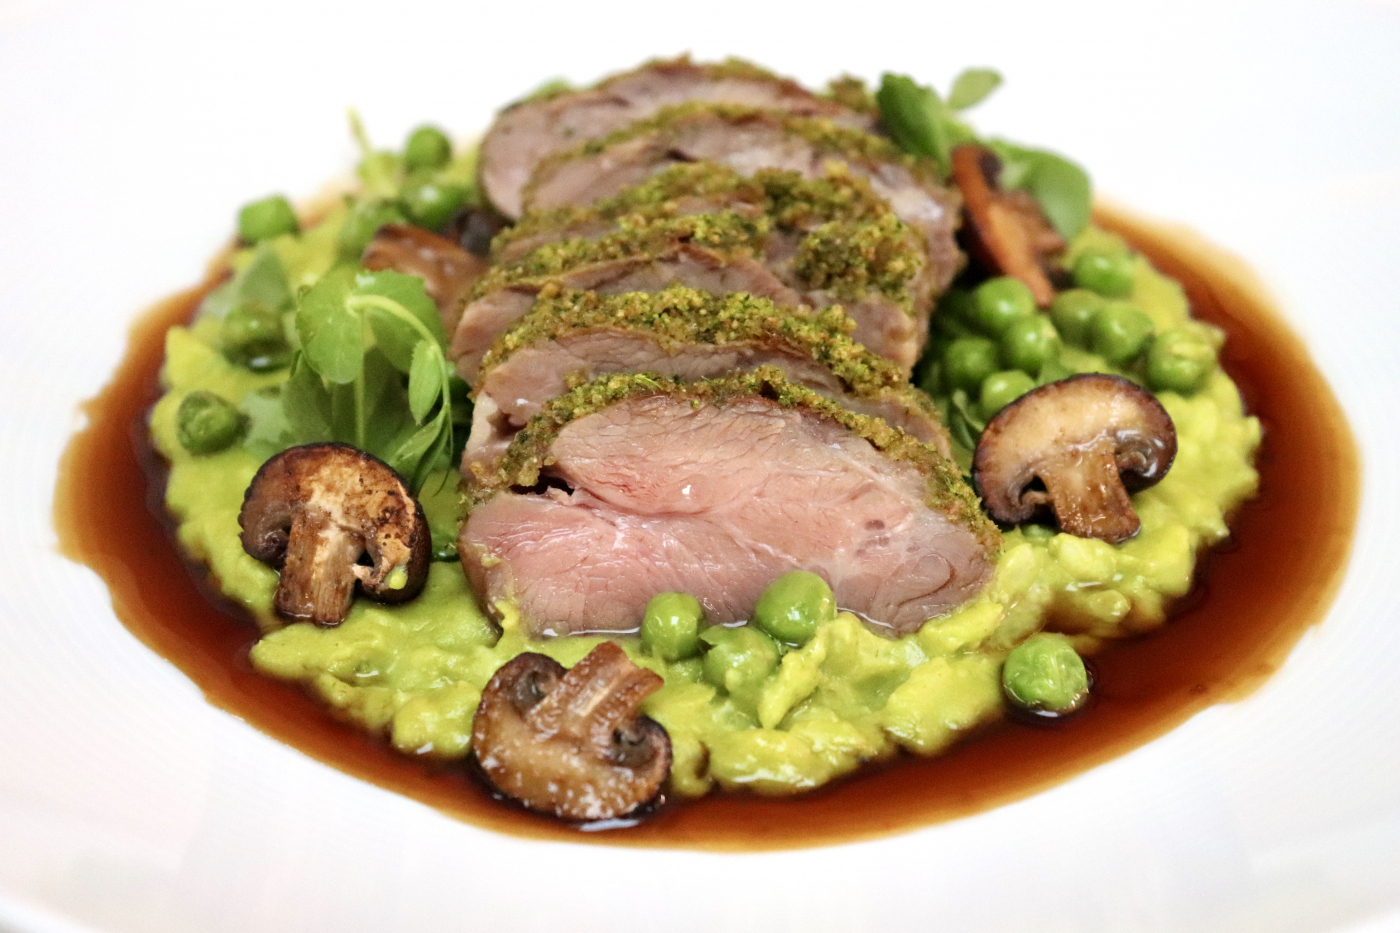 Herb-crusted neck fillet of lamb. Pea risotto, pea shoots and fresh garden peas. Buttered spinach and pan-fried chestnut mushrooms. Lamb jus.